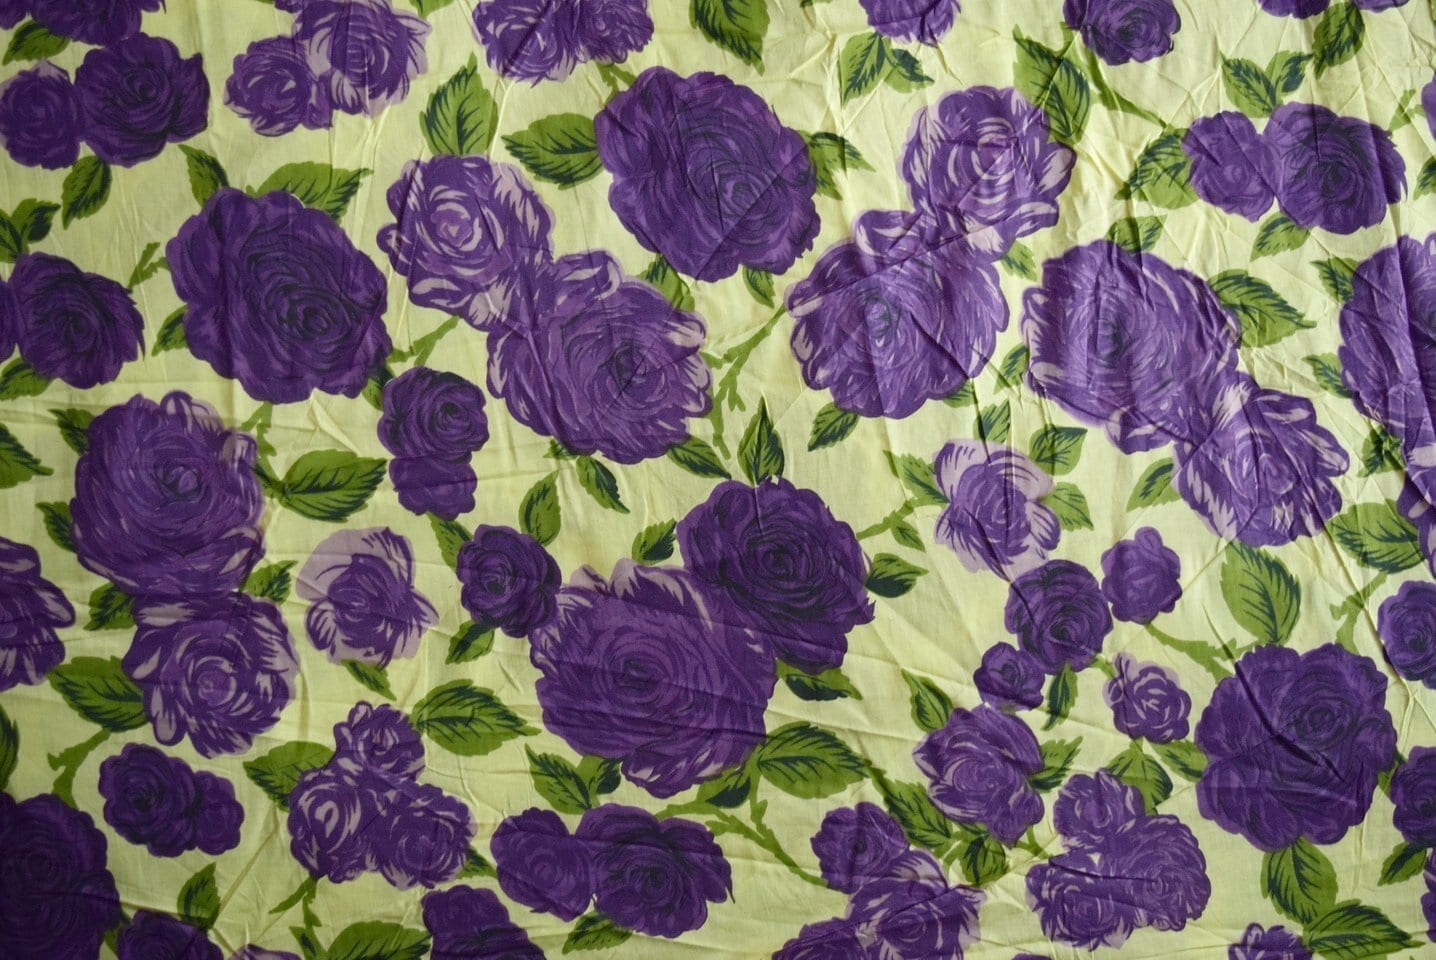 100% PURE Soft COTTON PRINTED fabric PC193 1